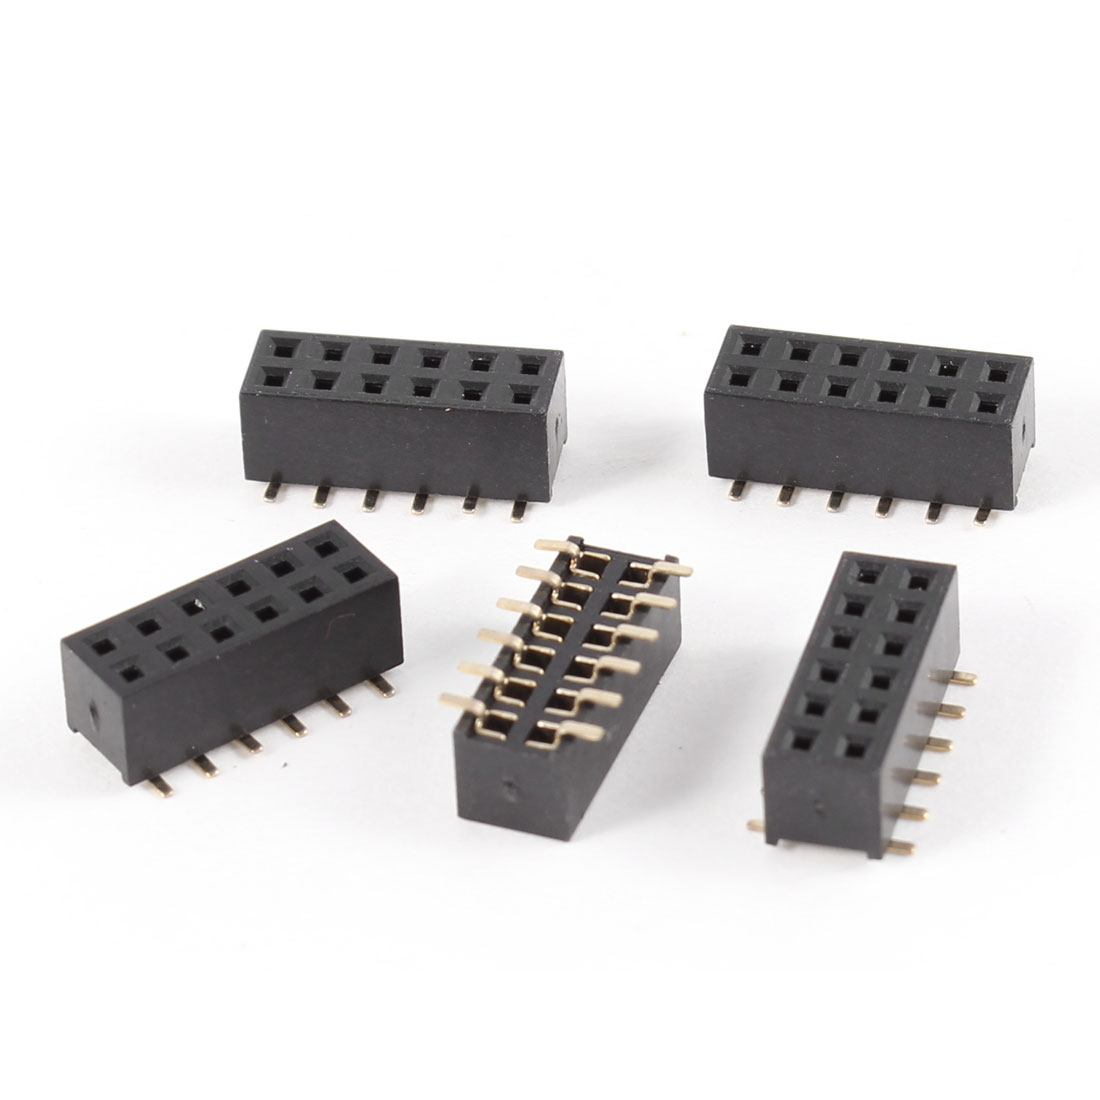 5Pcs Double Row 2mm Pitch 2x6 Pins SMT SMD Female Header Socket